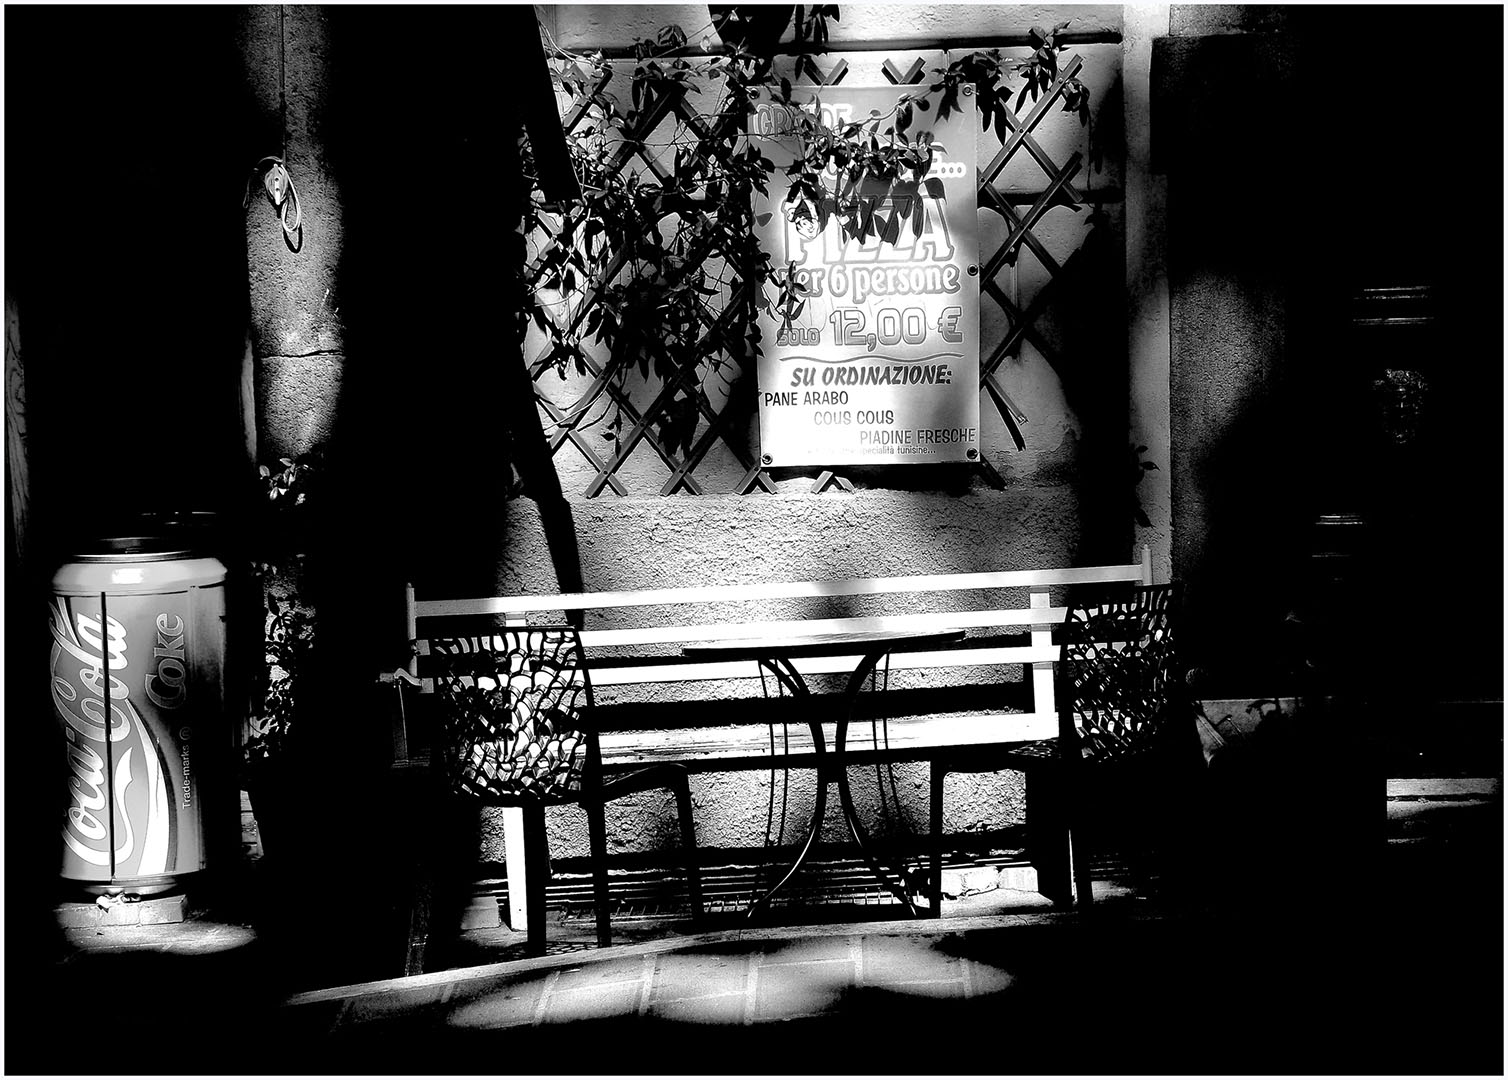 Wish_you_were_here_in_Black_and_White_134_I11.3-51